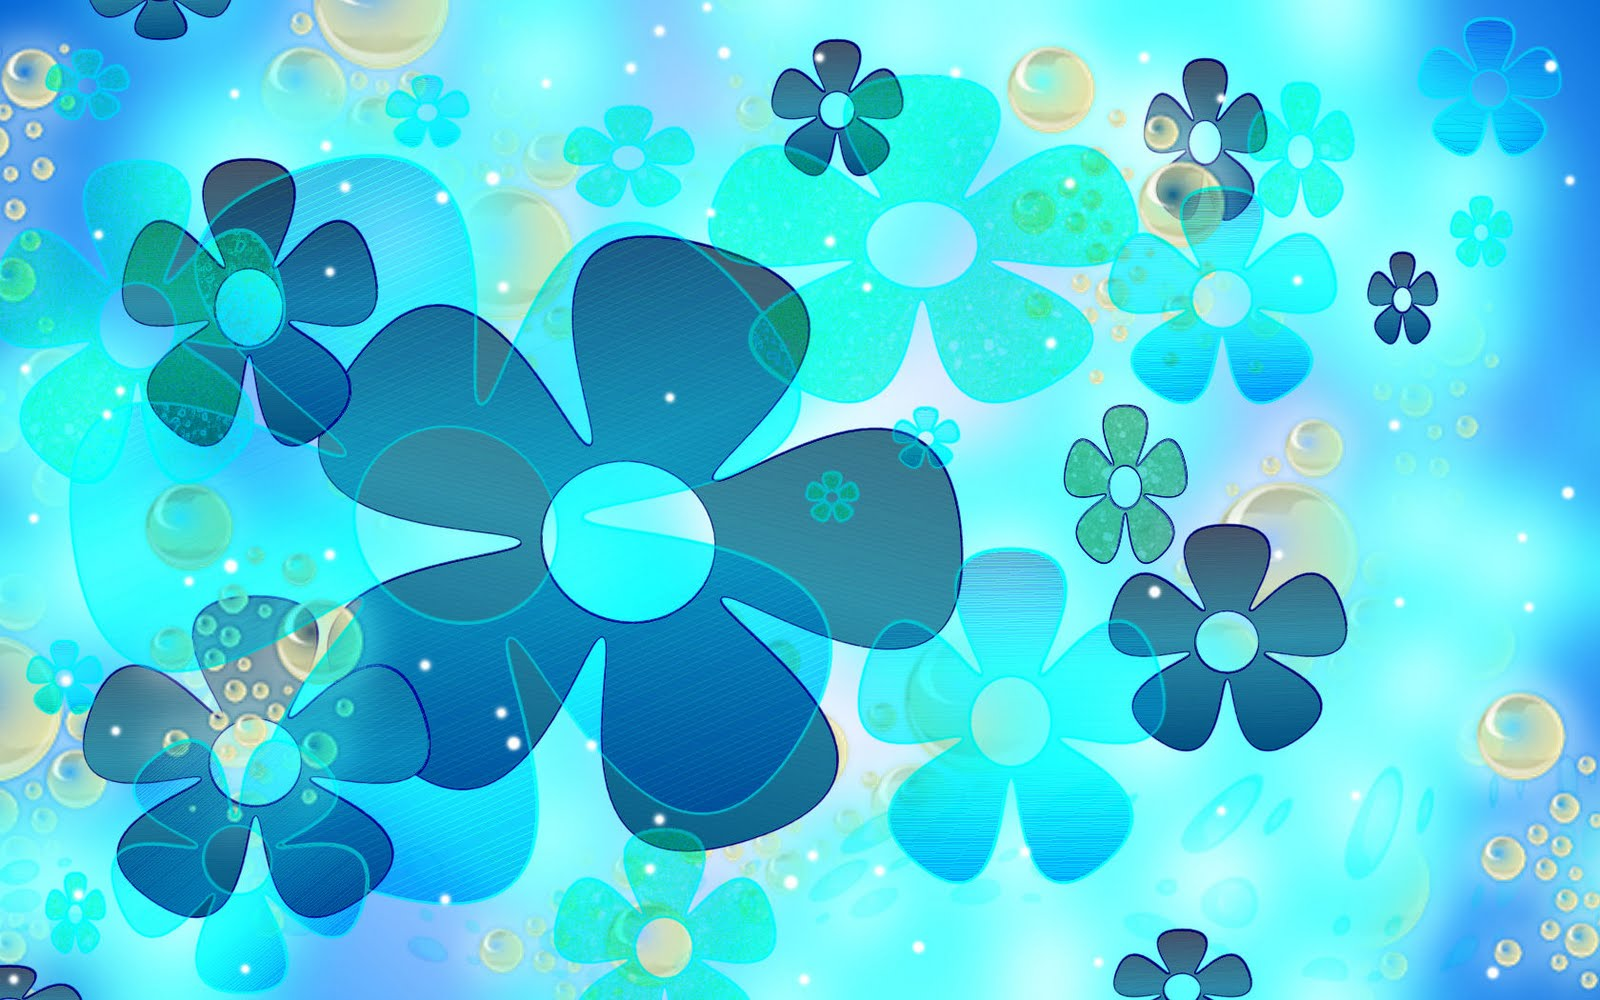 simple blue flower wallpapers - photo #28